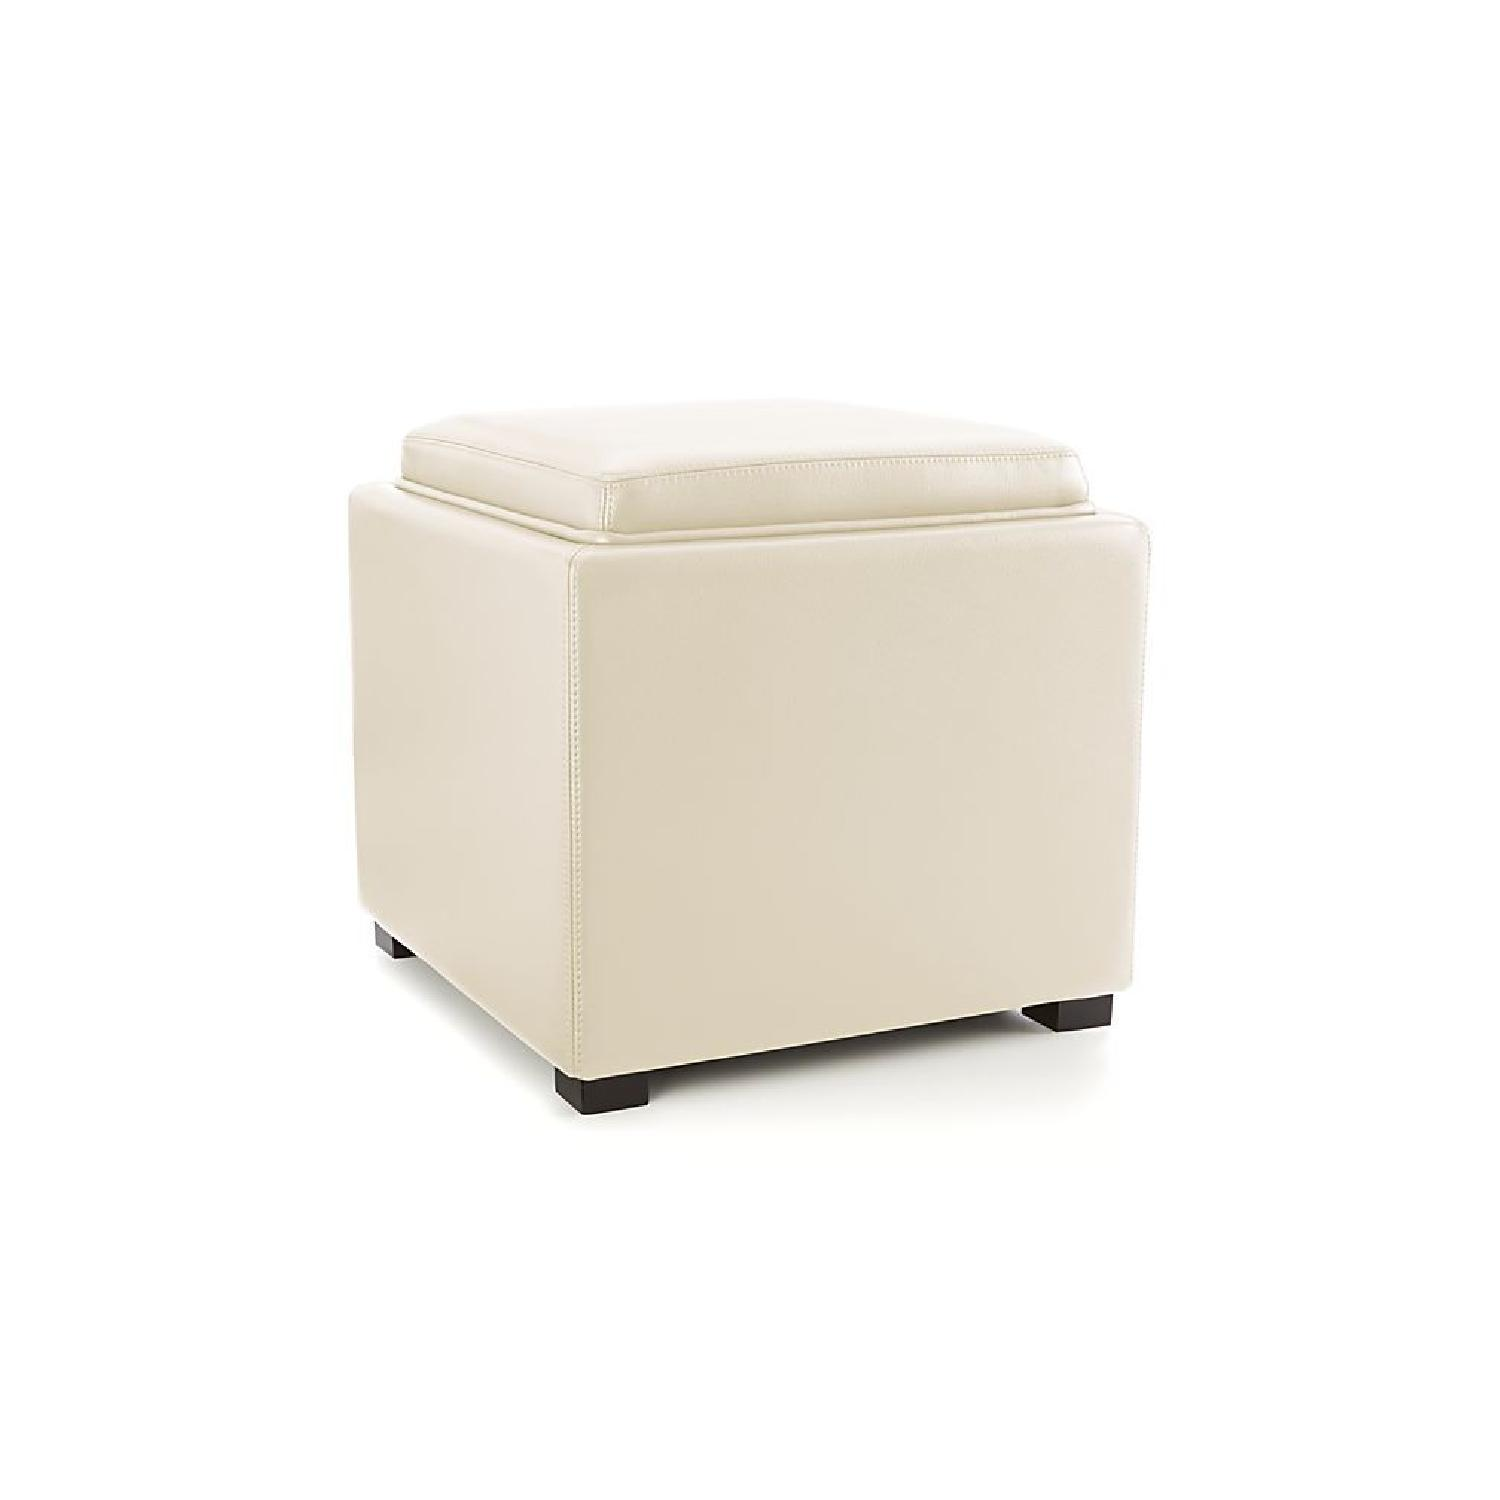 Crate & Barrel Stow Alabaster Leather Storage Ottoman